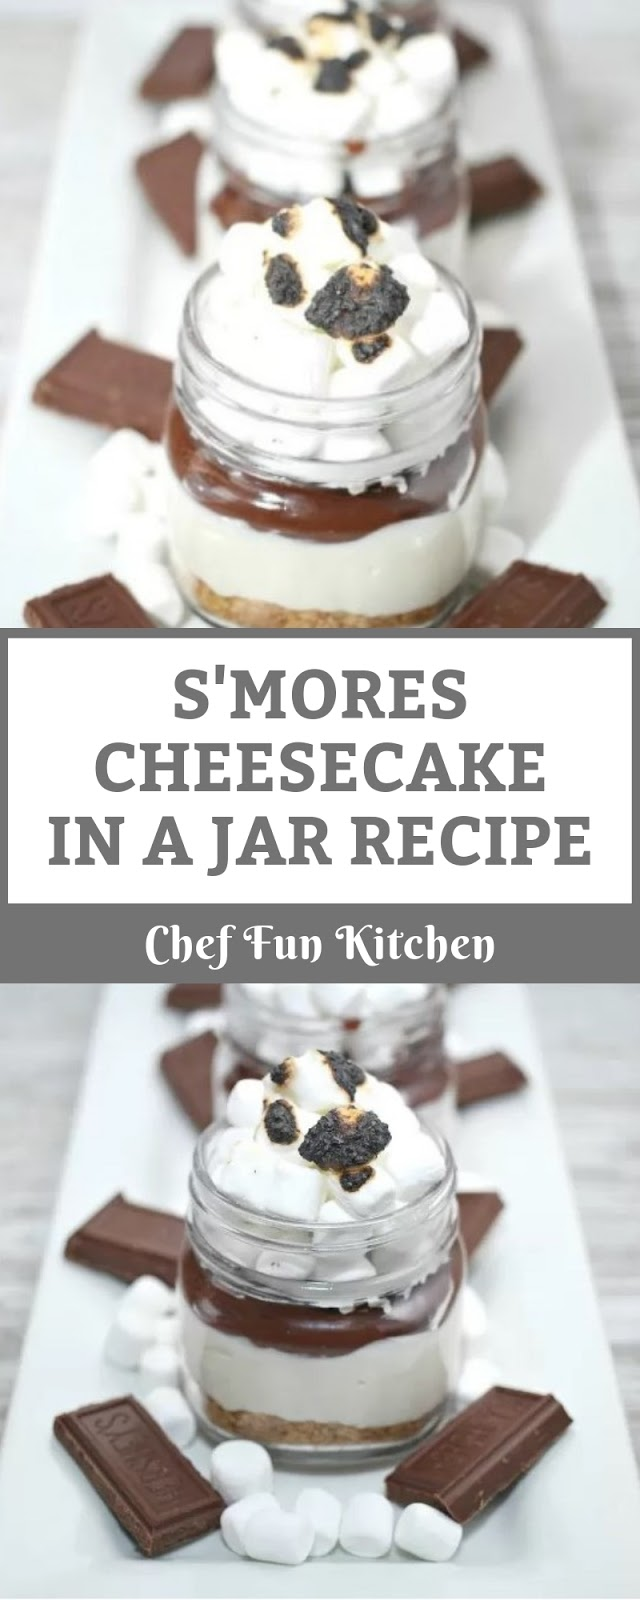 S'MORES CHEESECAKE IN A JAR RECIPE